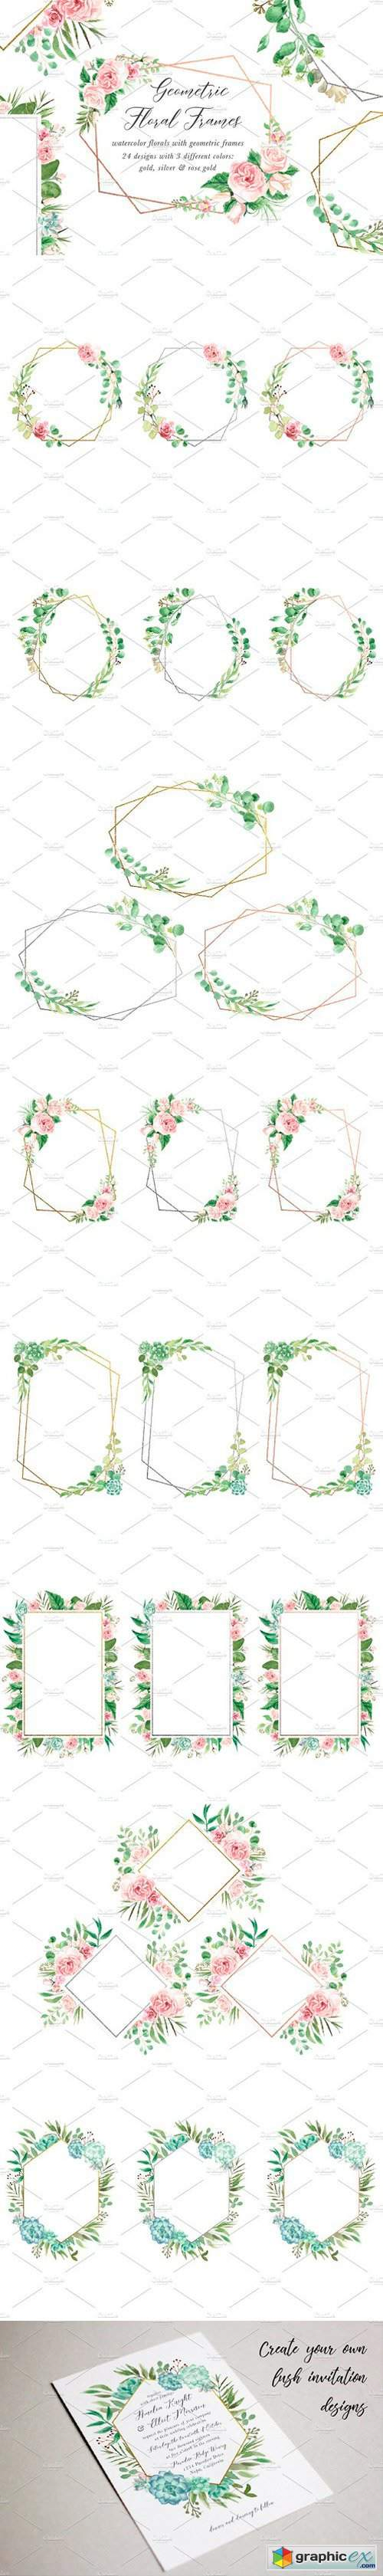 Watercolor Floral Geometric Frames